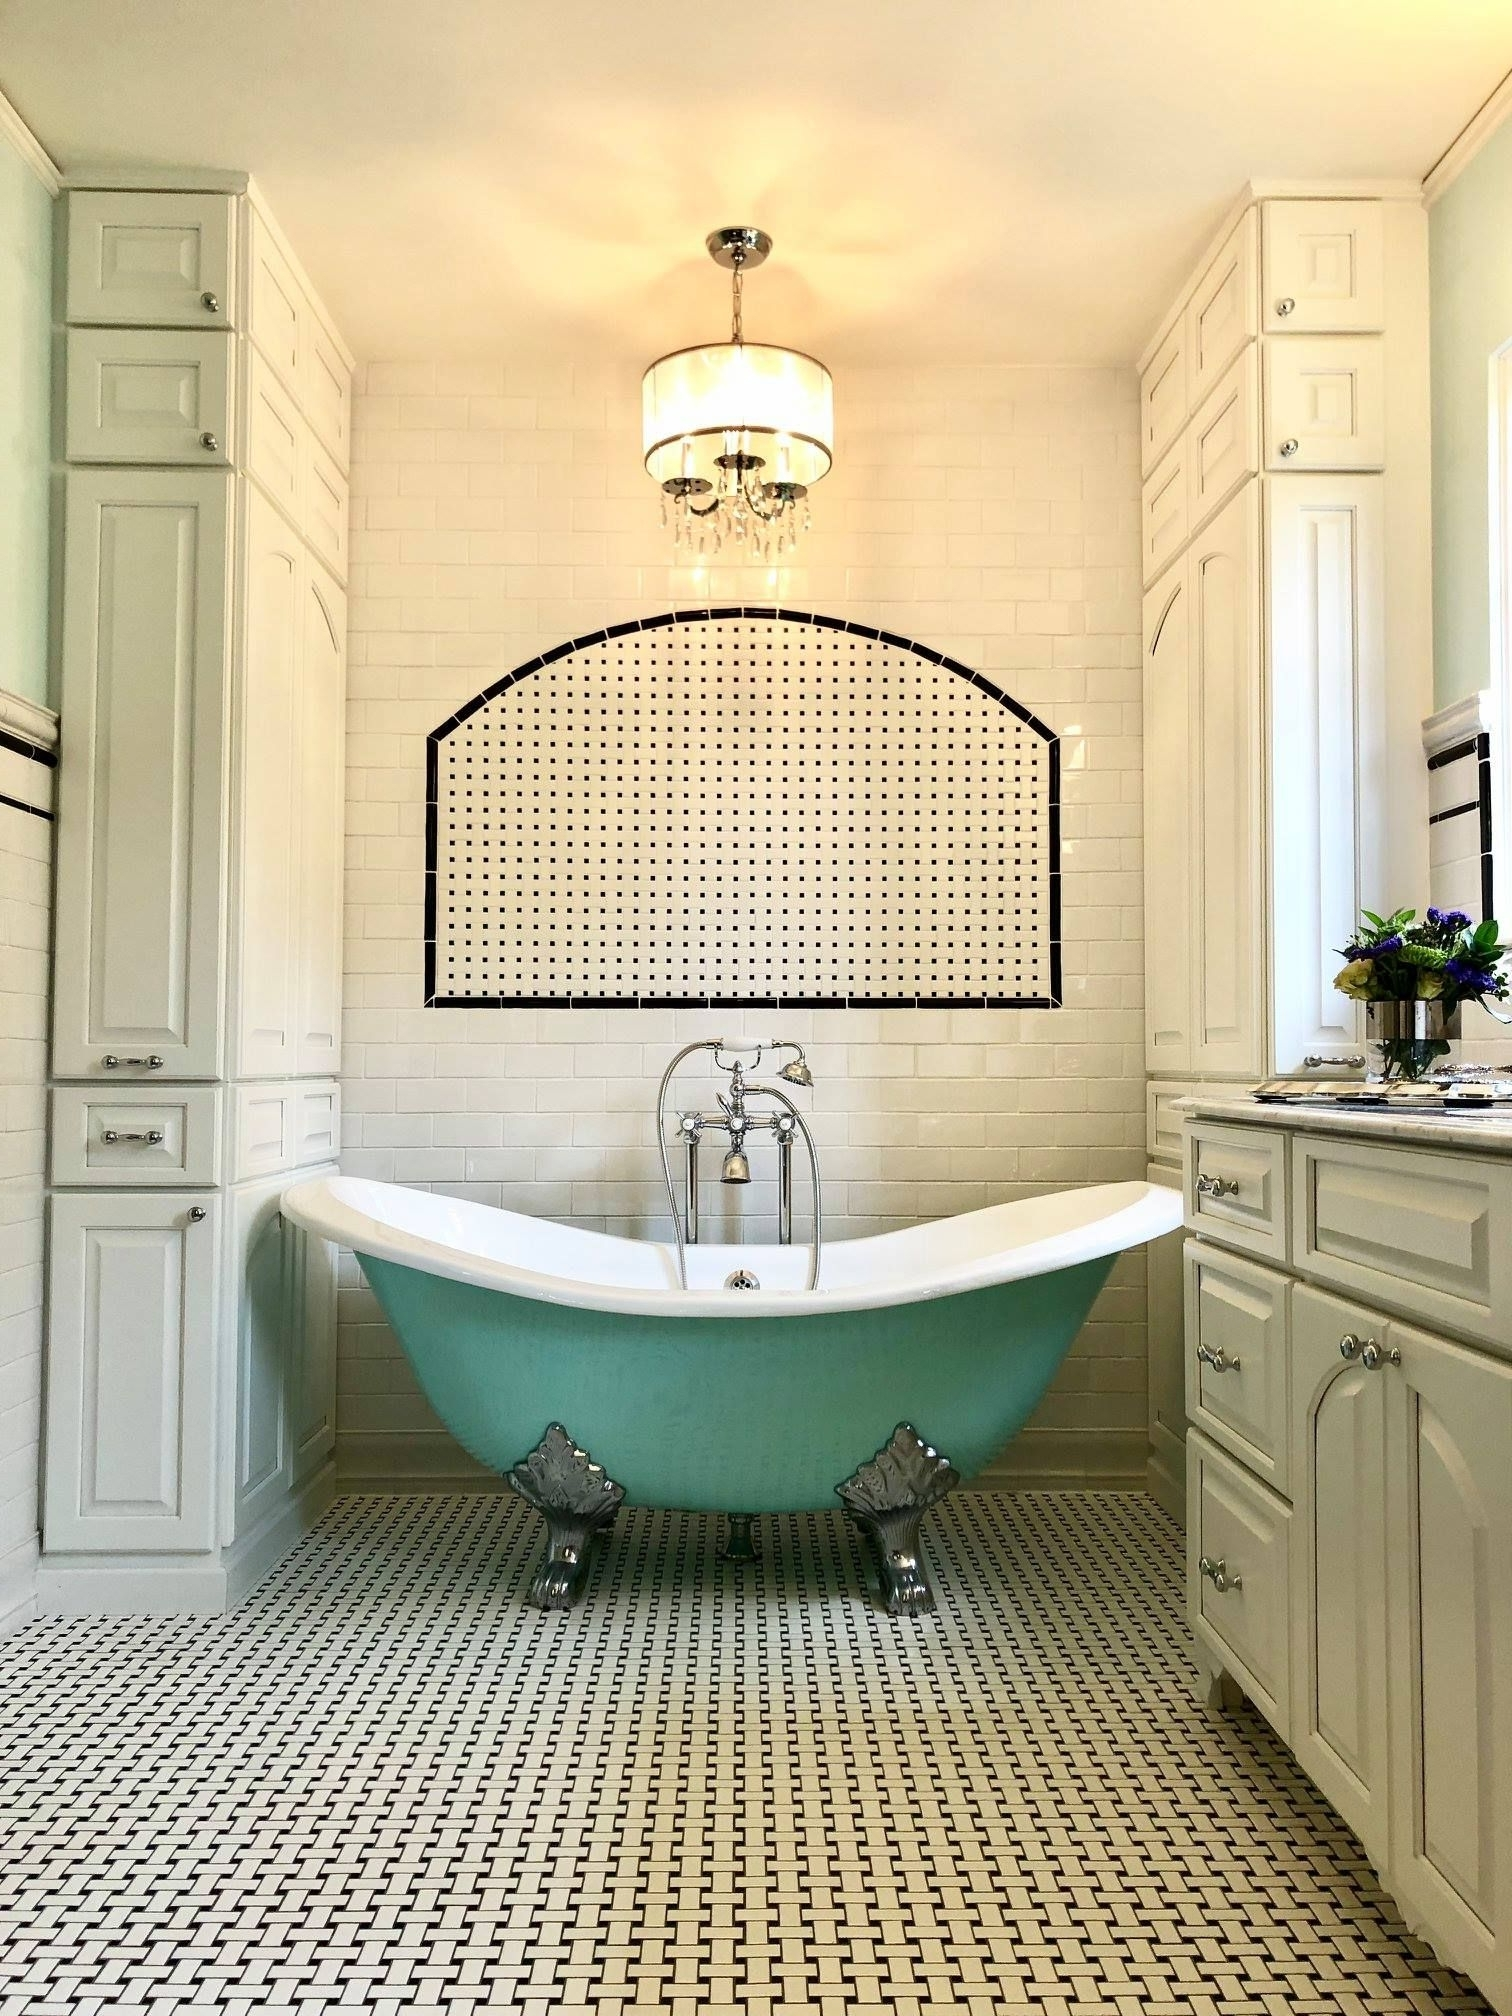 Any Solid Color 'Dunstable 68' 68'' Cast Iron Double Slipper 40+ Cast Iron Tub Bathroom Design Inspirations